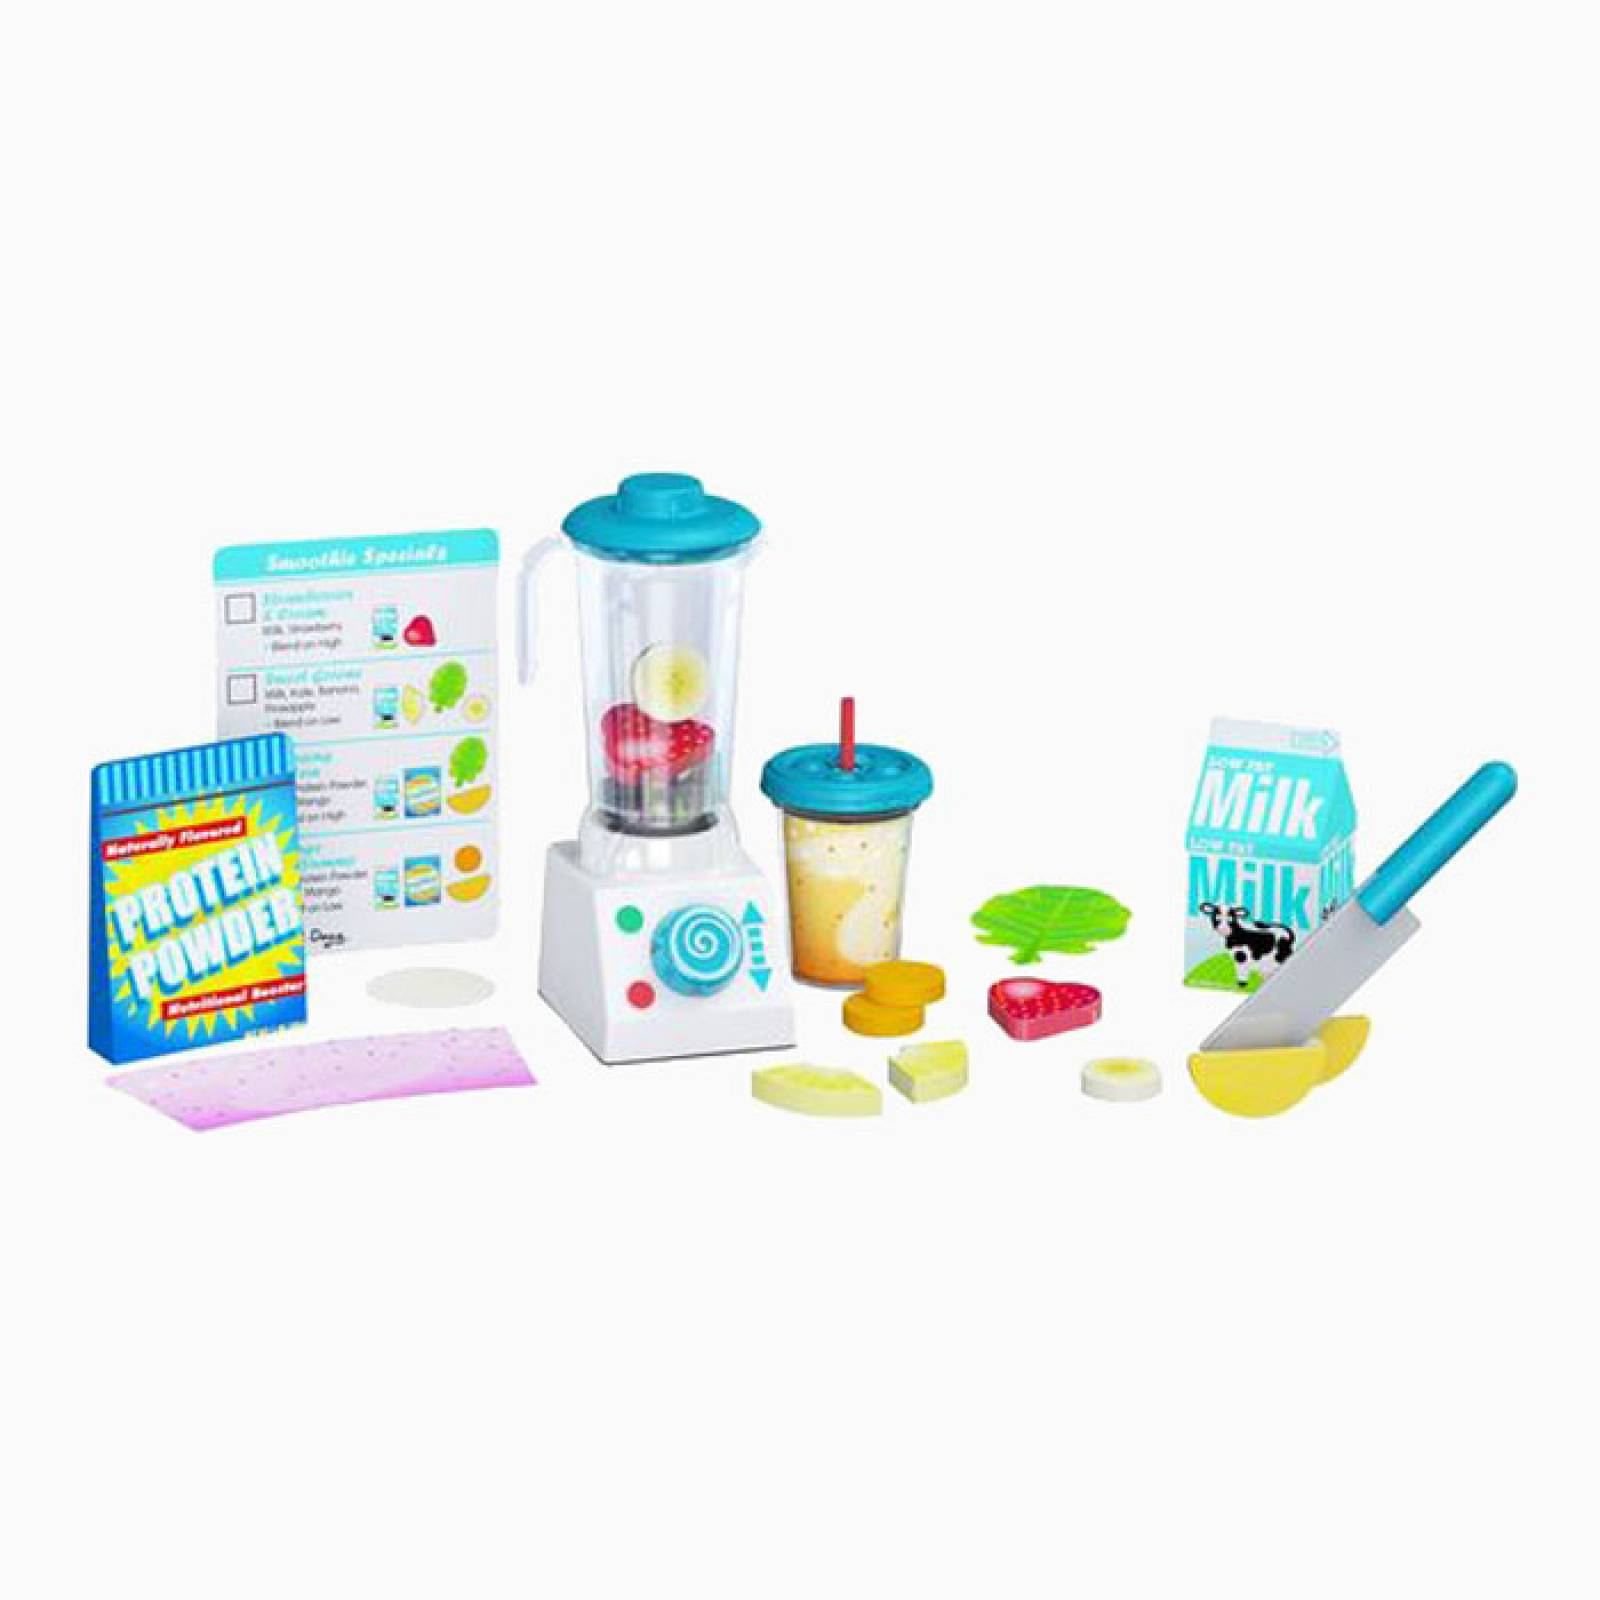 Toy Smoothie Maker Set By Melissa + Doug 3+ thumbnails